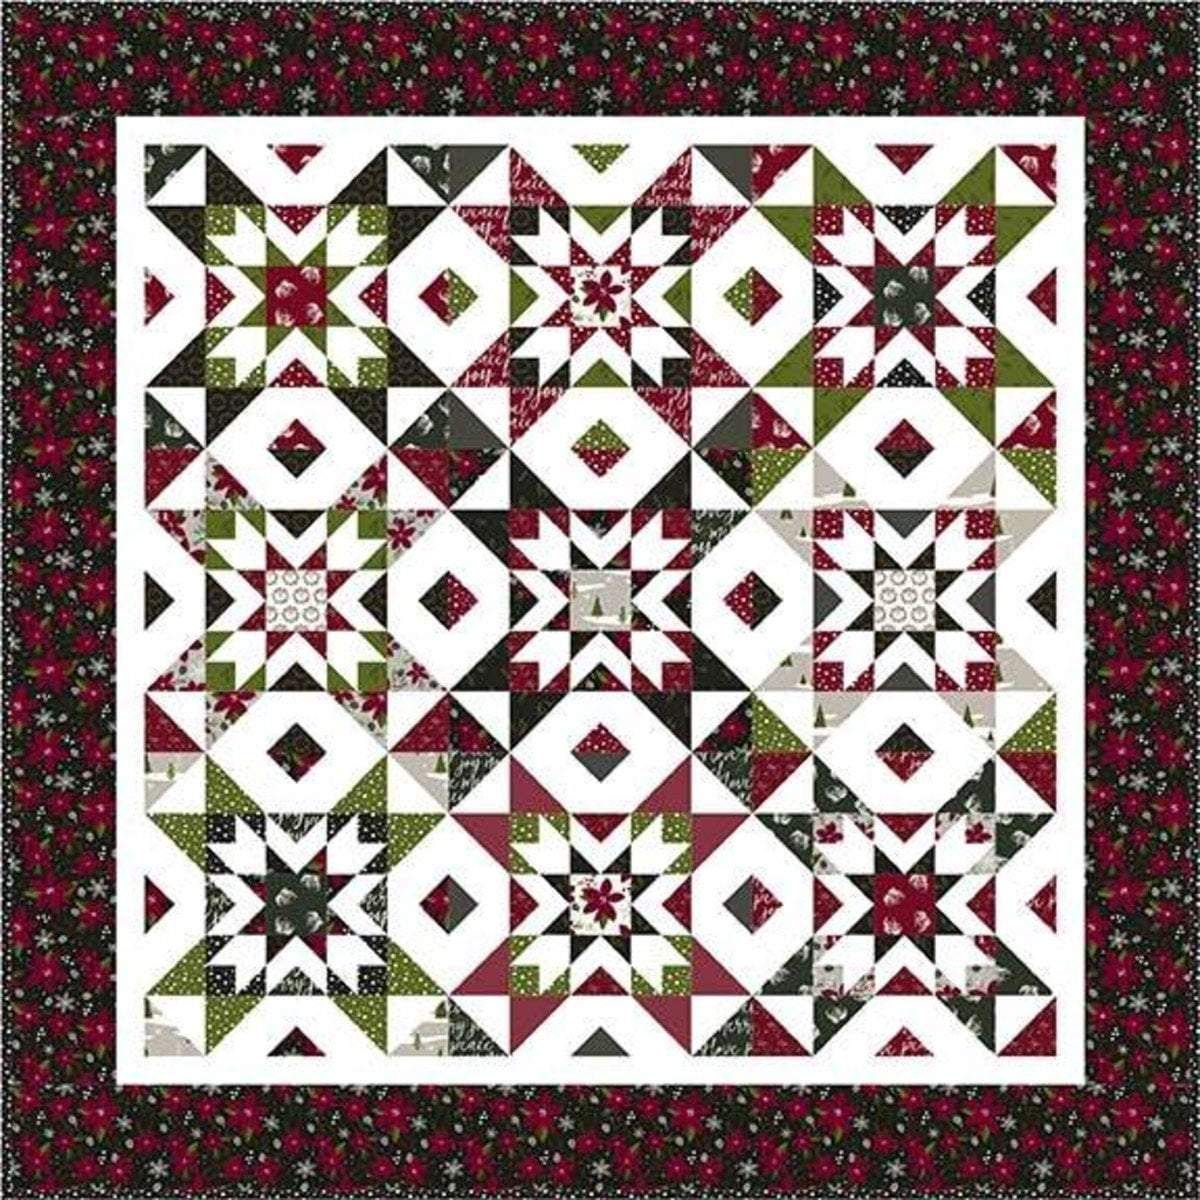 Nesting Stars Quilt Kit - Winterberry fabric collection - Christmas - Quilt fabric - Riley Blake ...